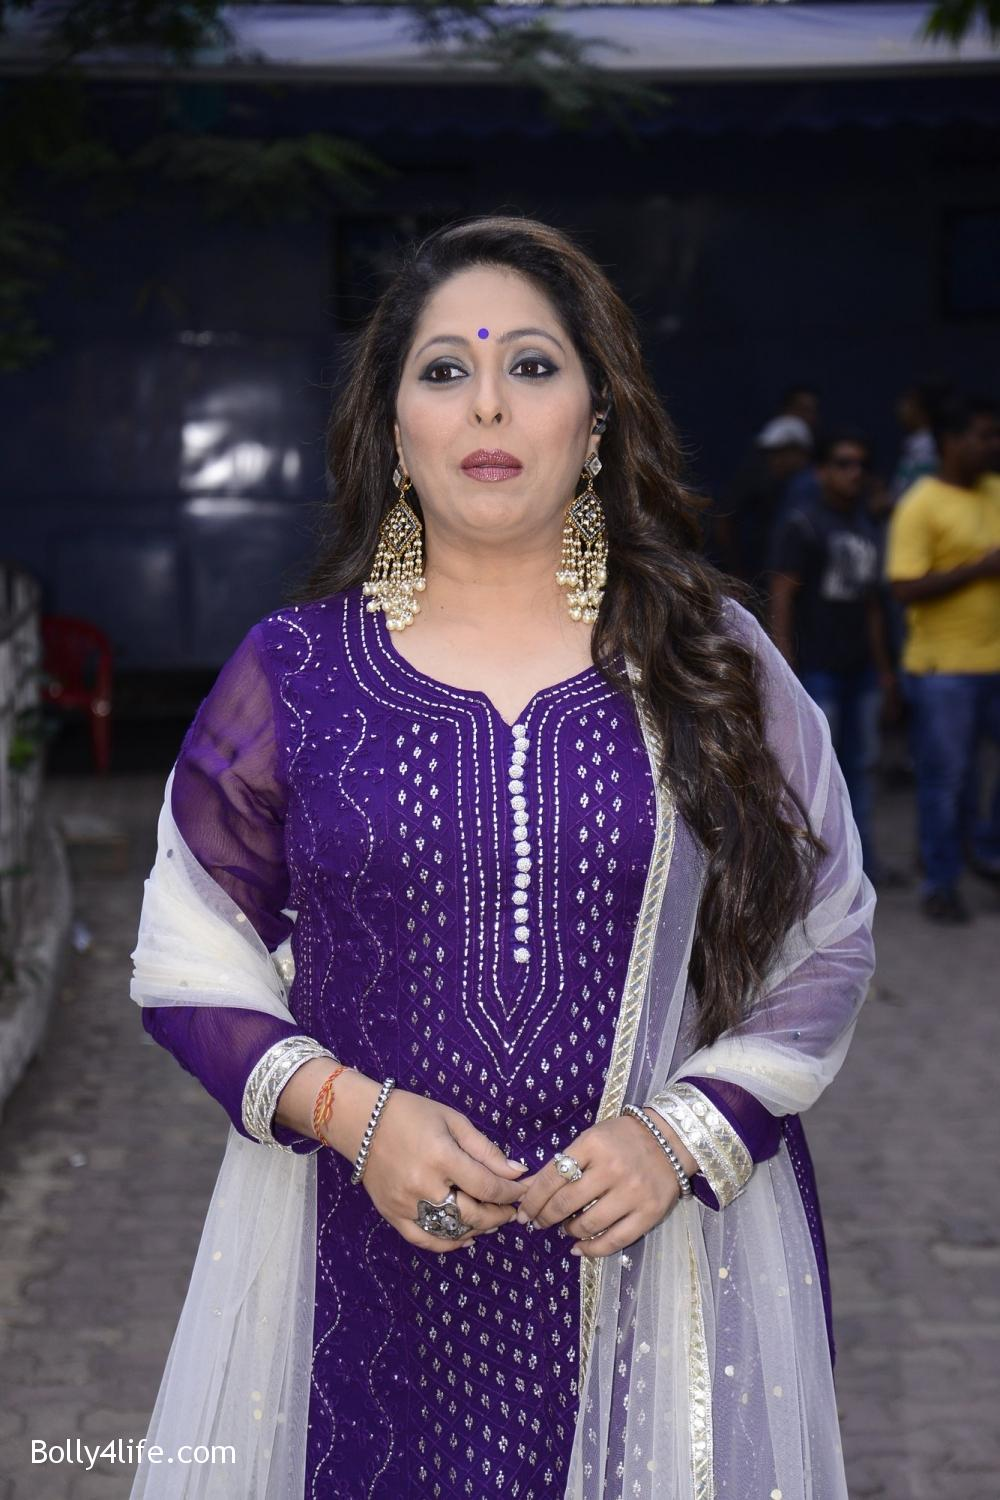 Choreographer-Geeta-Kapoor-during-on-the-sets-of-Sony-TV-reality-show-Super-Dancer-1.jpg